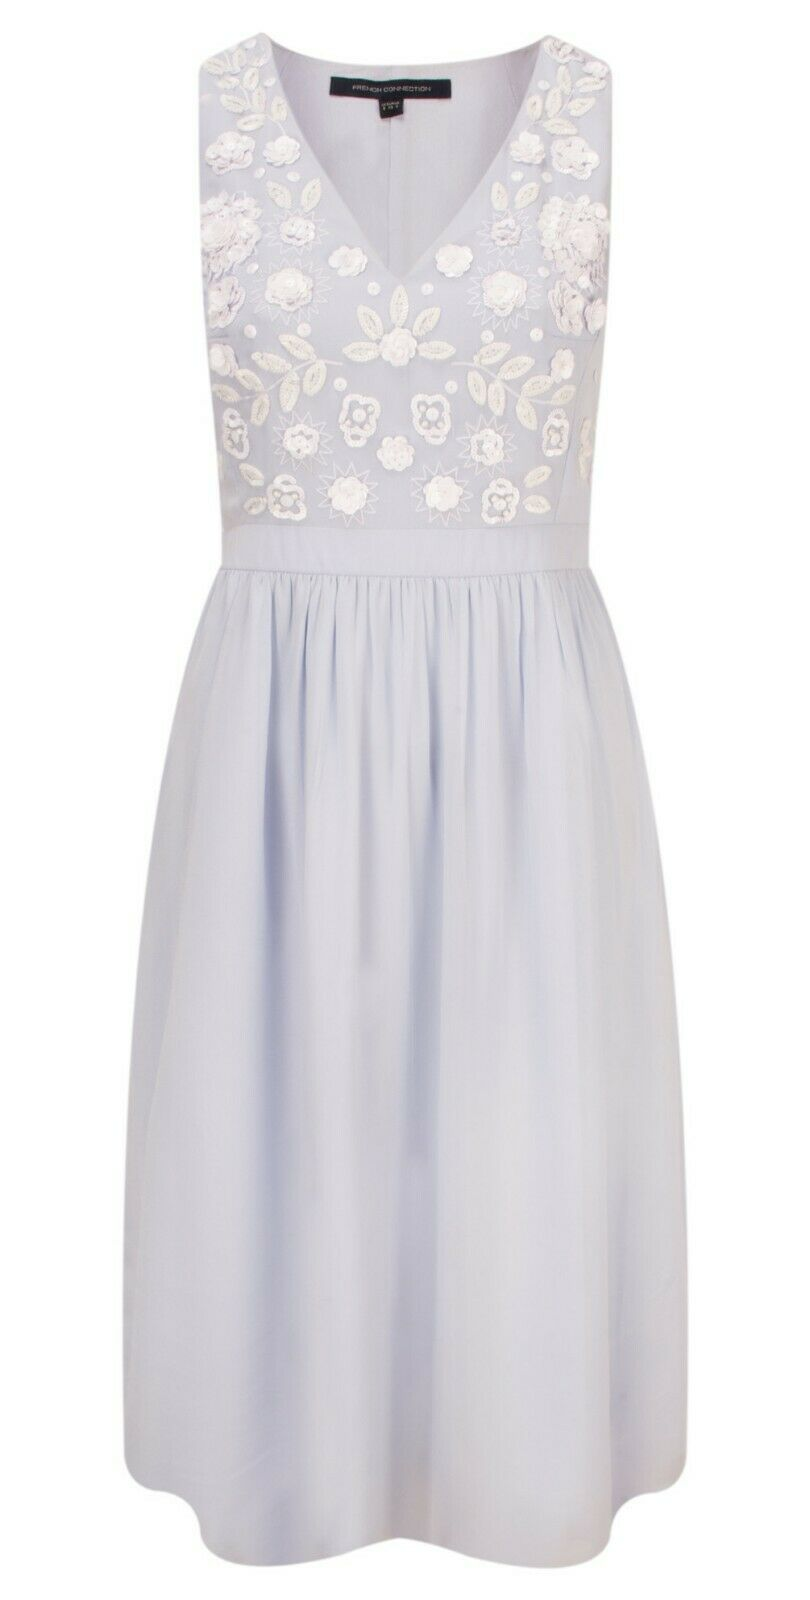 FRENCH FRENCH FRENCH CONNECTION DALIA FLORAL EMBROIDERED DRESS SIZE 16 NEW WITH TAG RRP 6f1d09